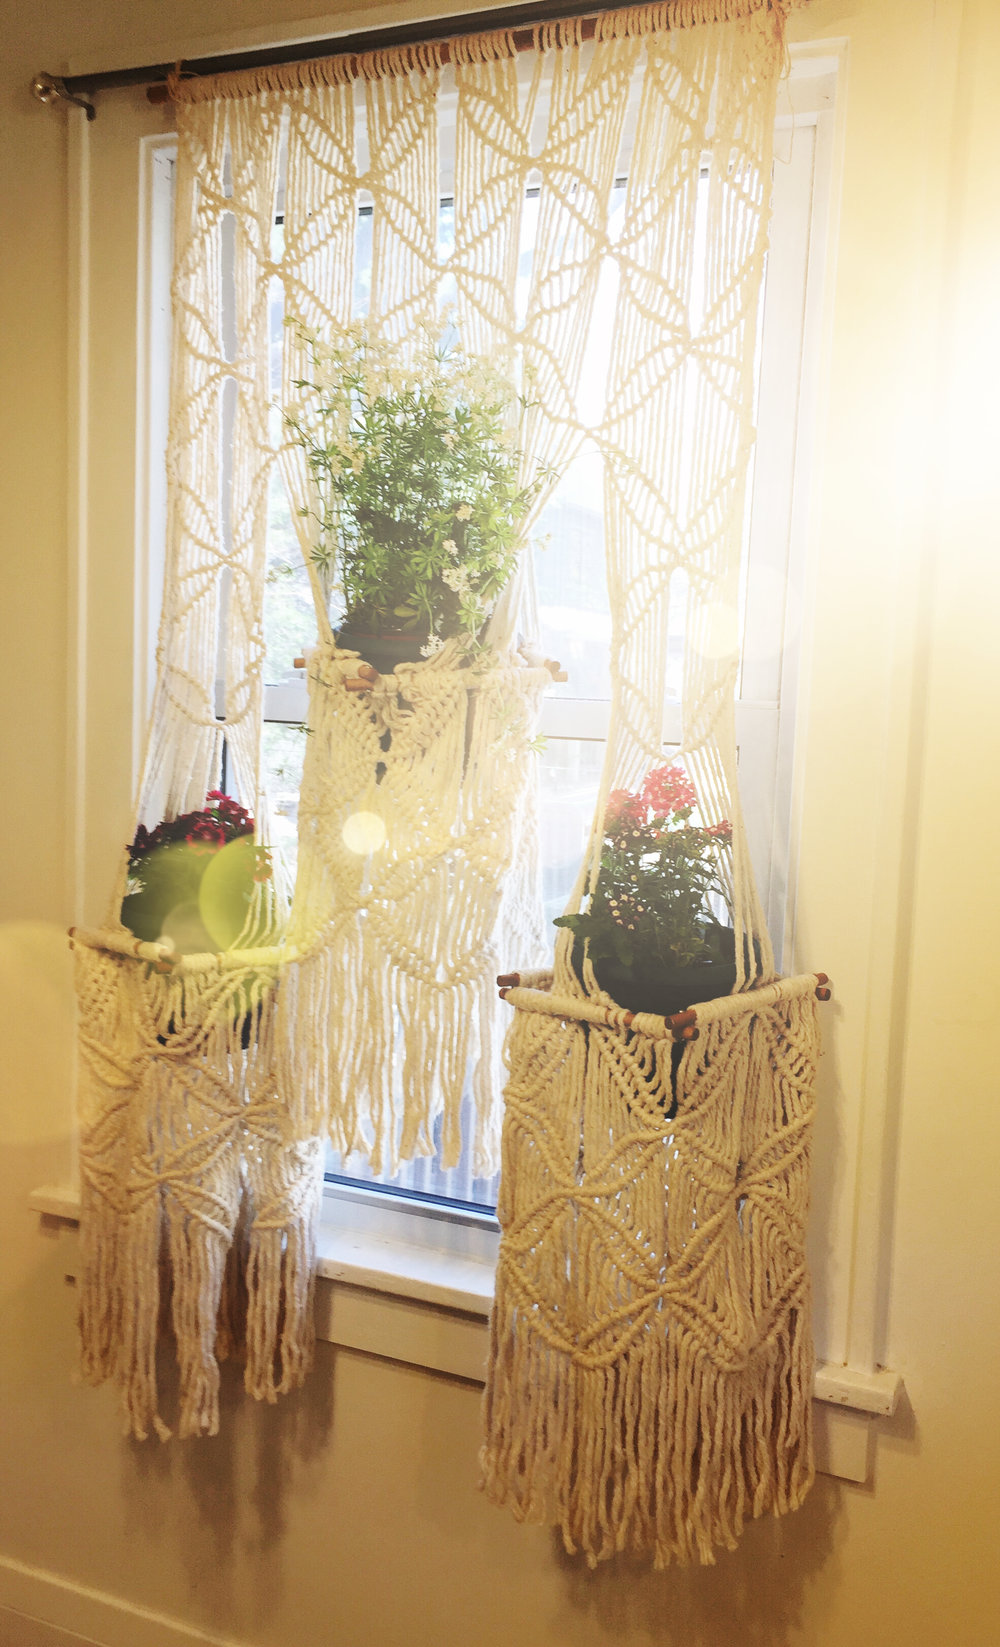 Knotty by Nature Vintage Macramé Plant Hanger Curtain